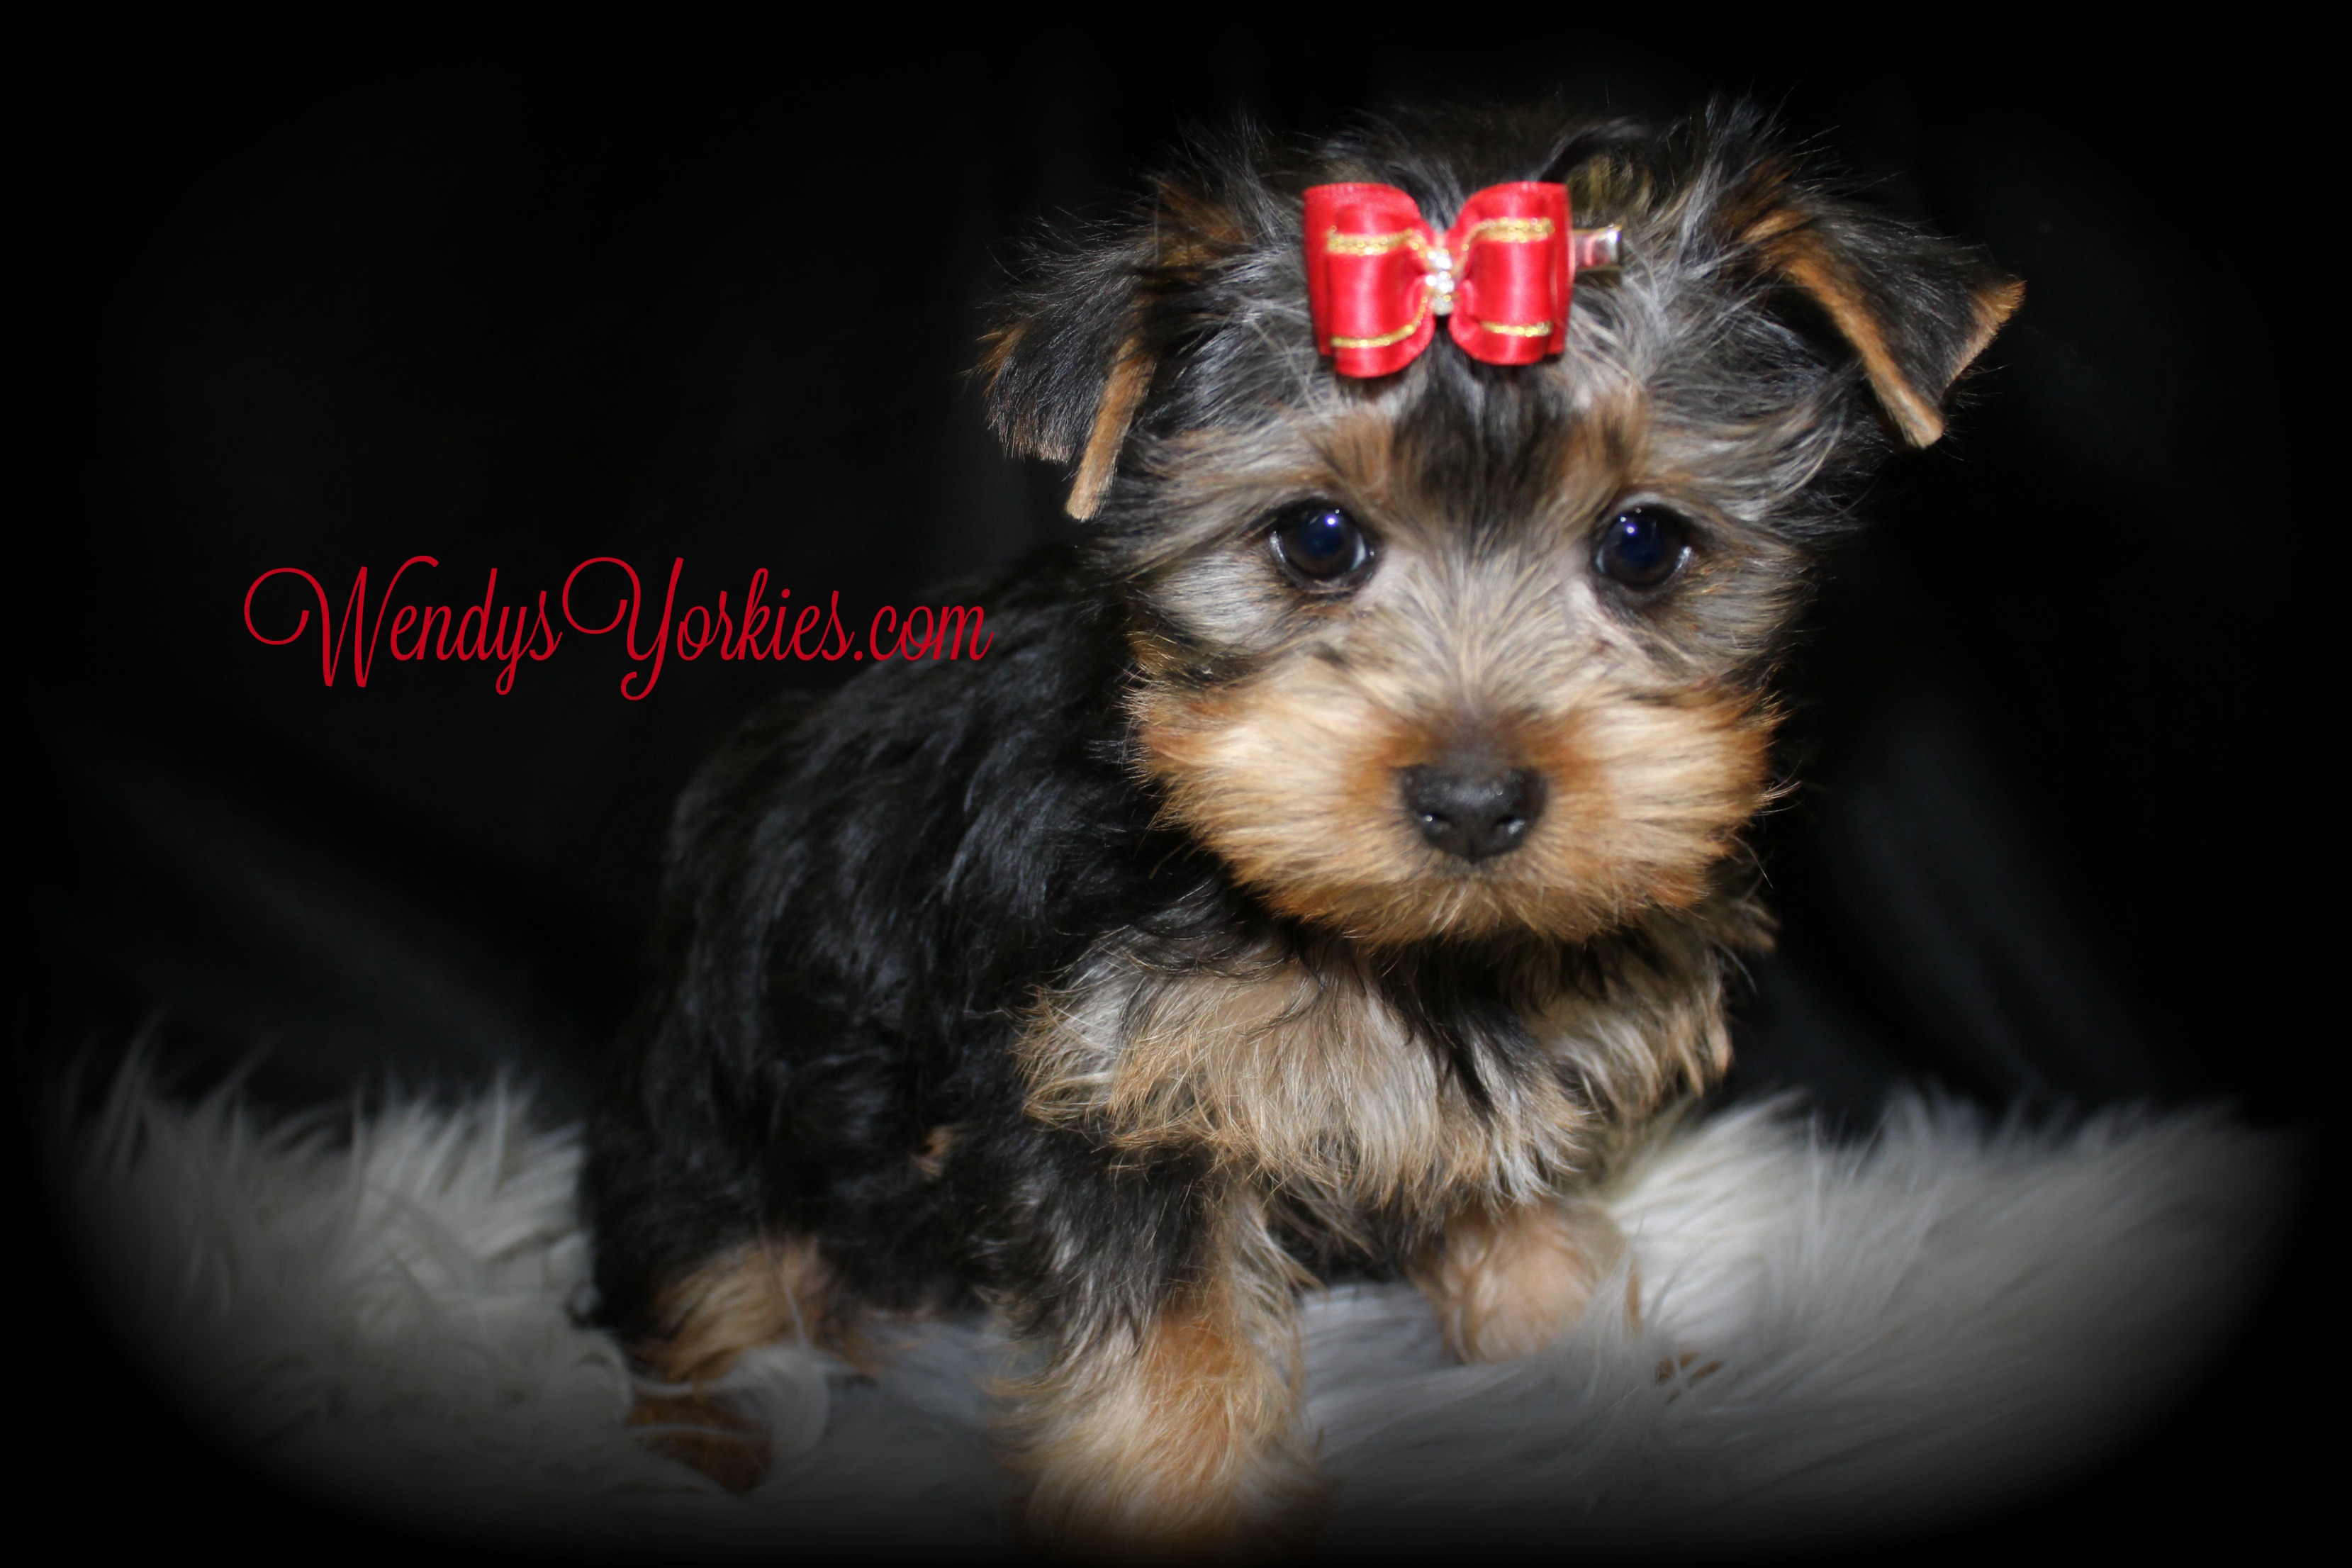 Yorkie puppies for sale, WEndysYorkies.com, Ladys Lacy m2